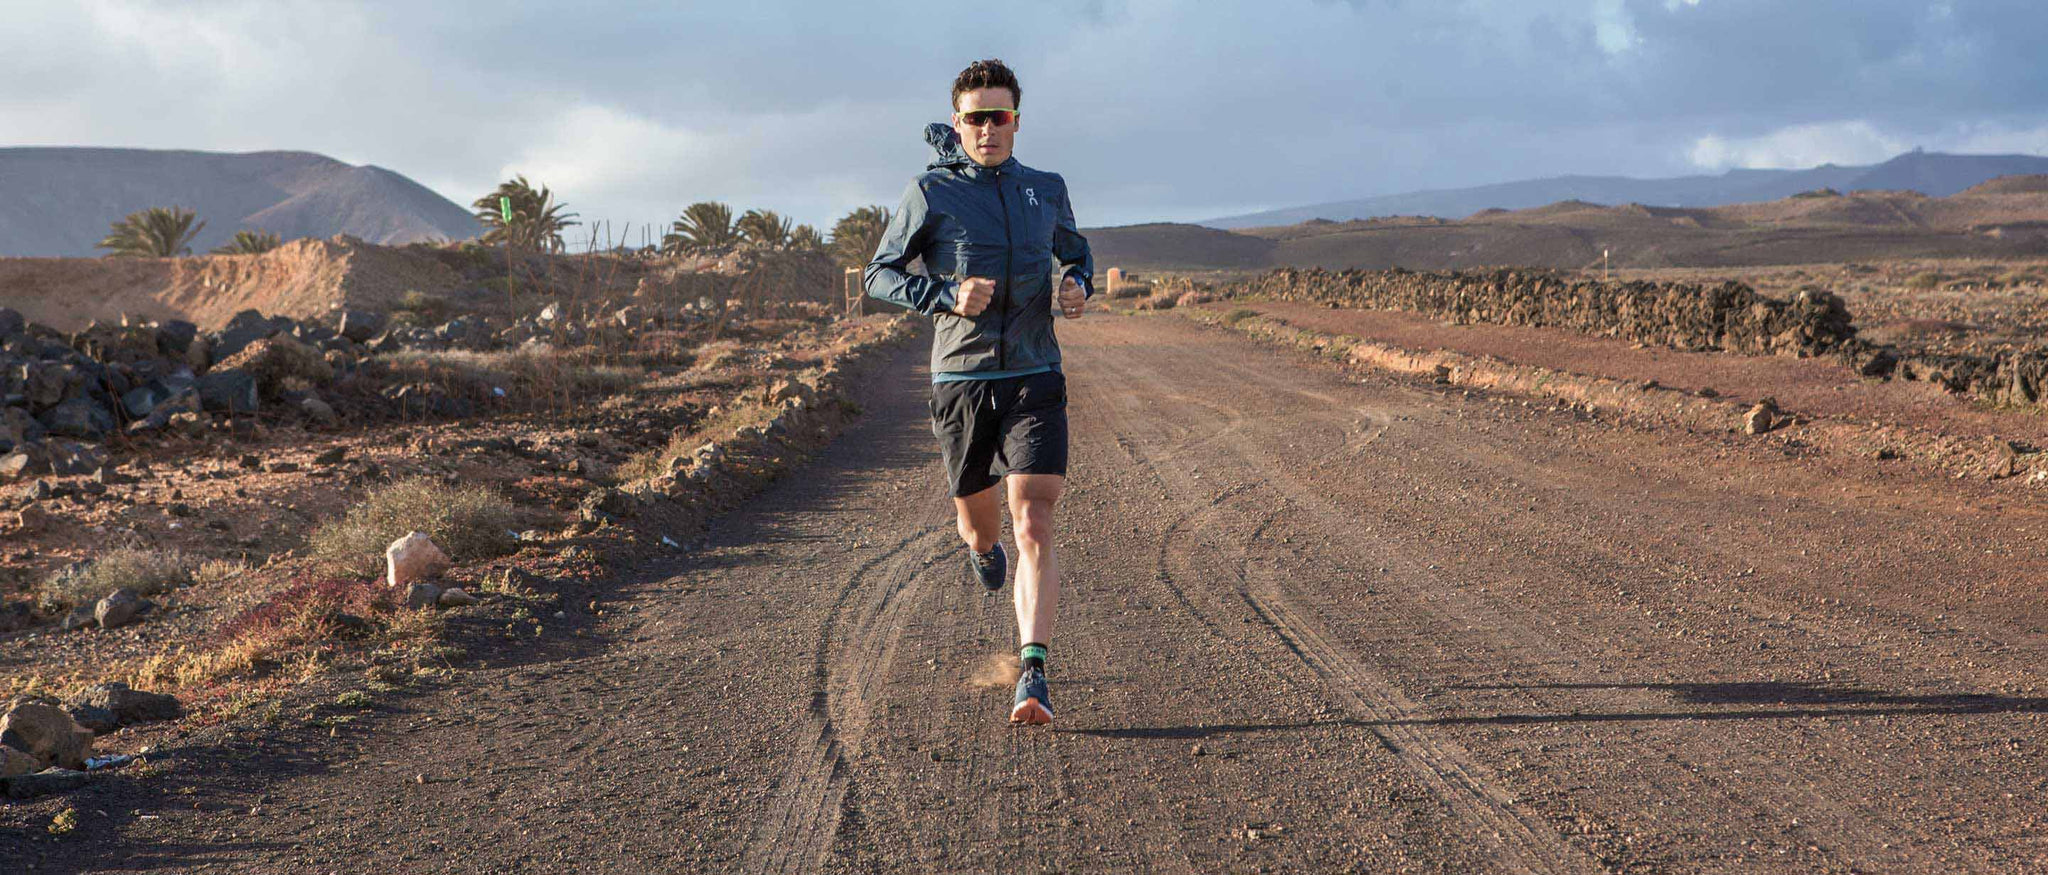 On Running: The Story Behind The Lightest Running Shoe Brand